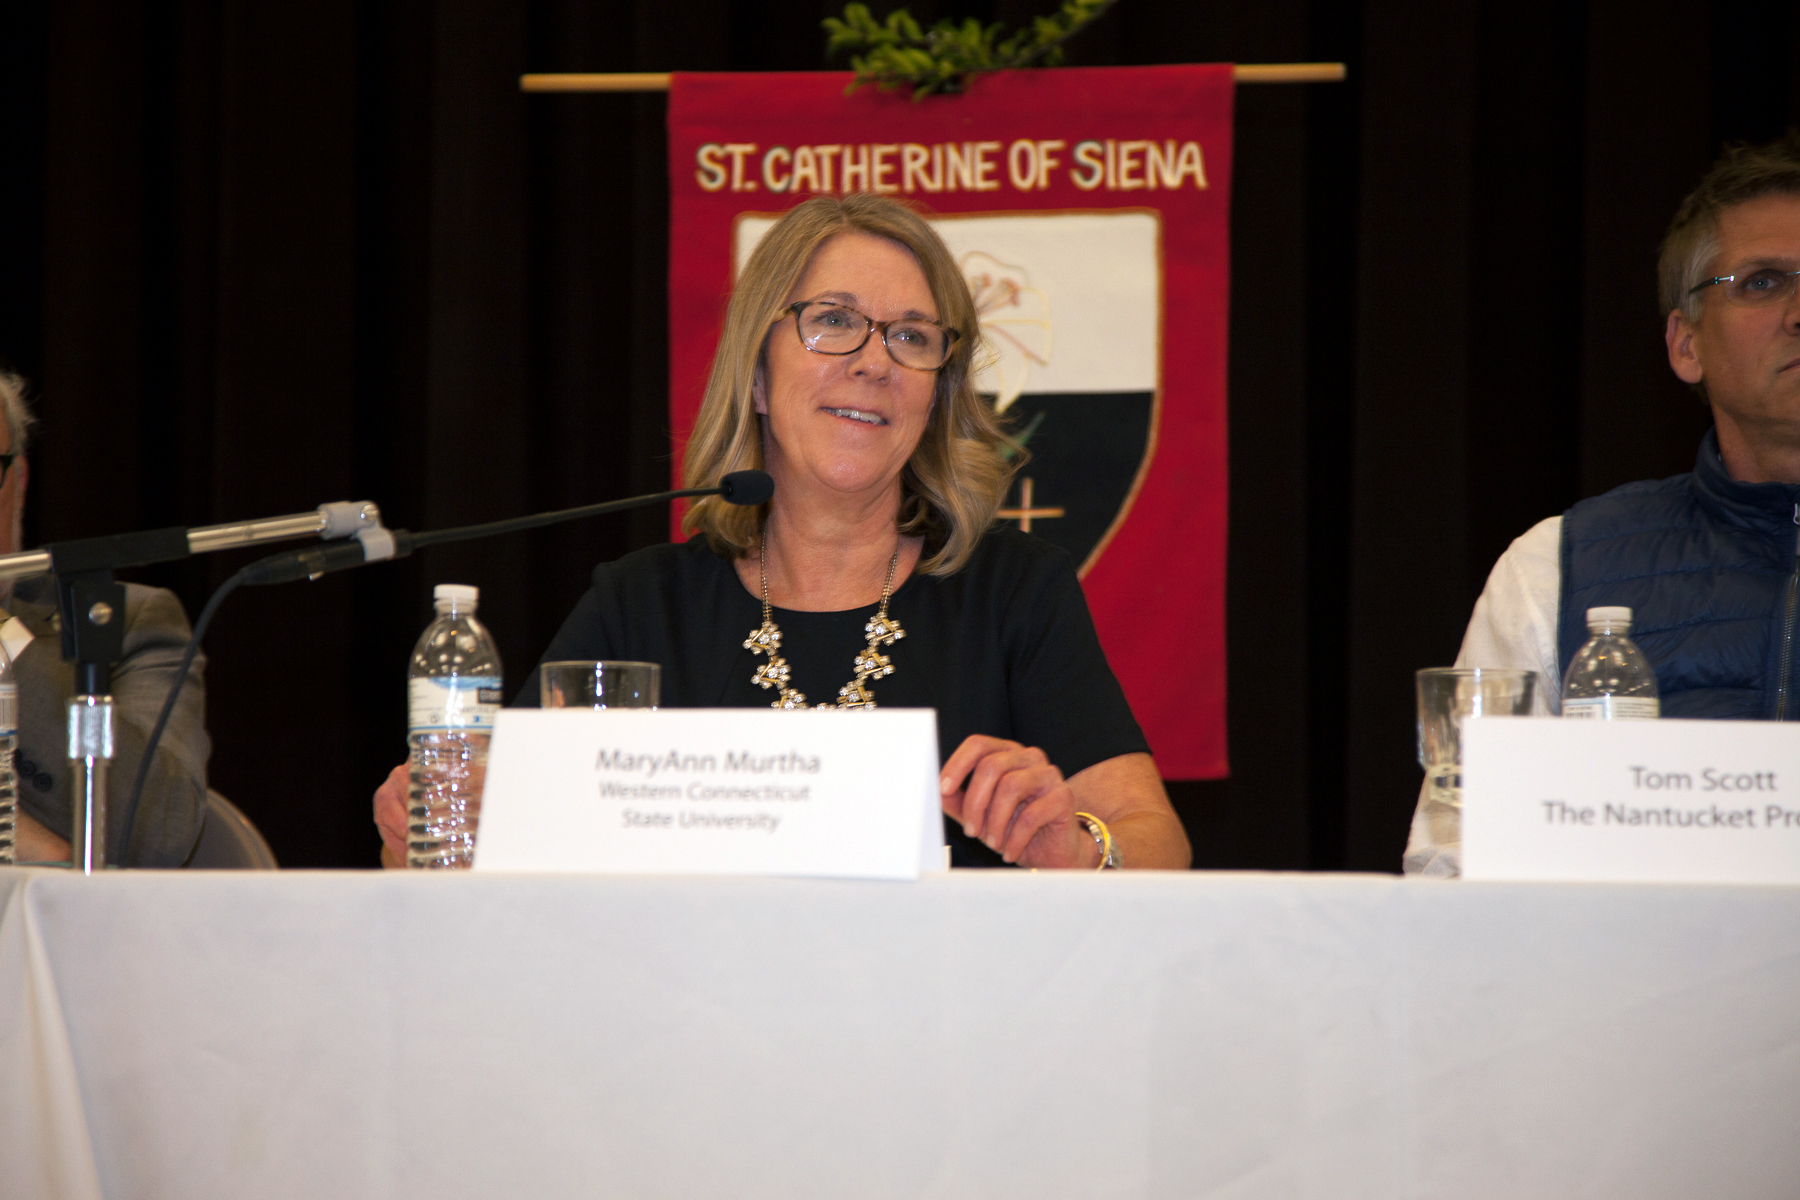 """L-R Western Connecticut State University Adjunct Professor MaryAnn Murtha offers insight during the """"Election Aftermath: Faith & the Common Good"""" expert panel discussion, held on Dec. 7, 2016, at St. Catherine of Siena Parish, Riverside, Conn., in front of an audience of some 200 people. Tom Scott, business executive, Yale University Divinity School graduate student and CoFounder of the Greenwich, Conn.-based The Nantucket Project, listens in."""